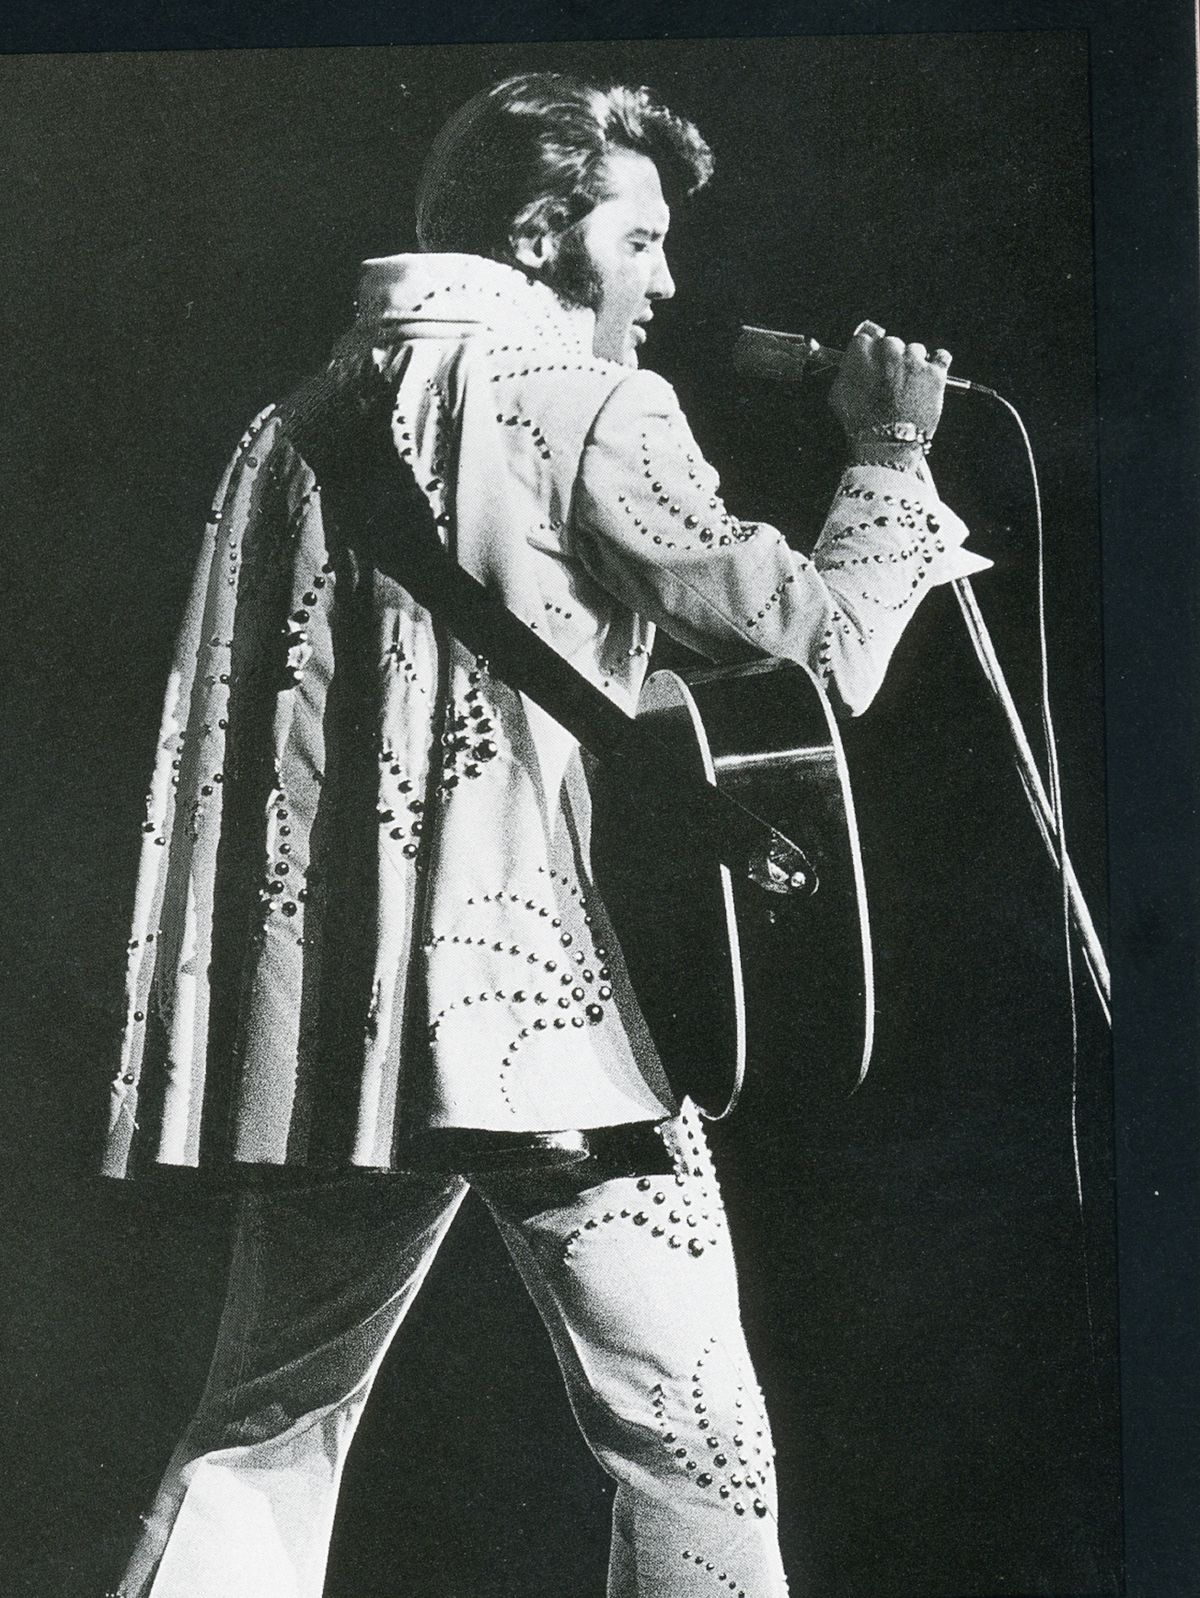 """Elvis Presley in 1976, from """"The Stadium,"""" a history of the Chicago Stadium by Don Hayner and Tom McNamee. 